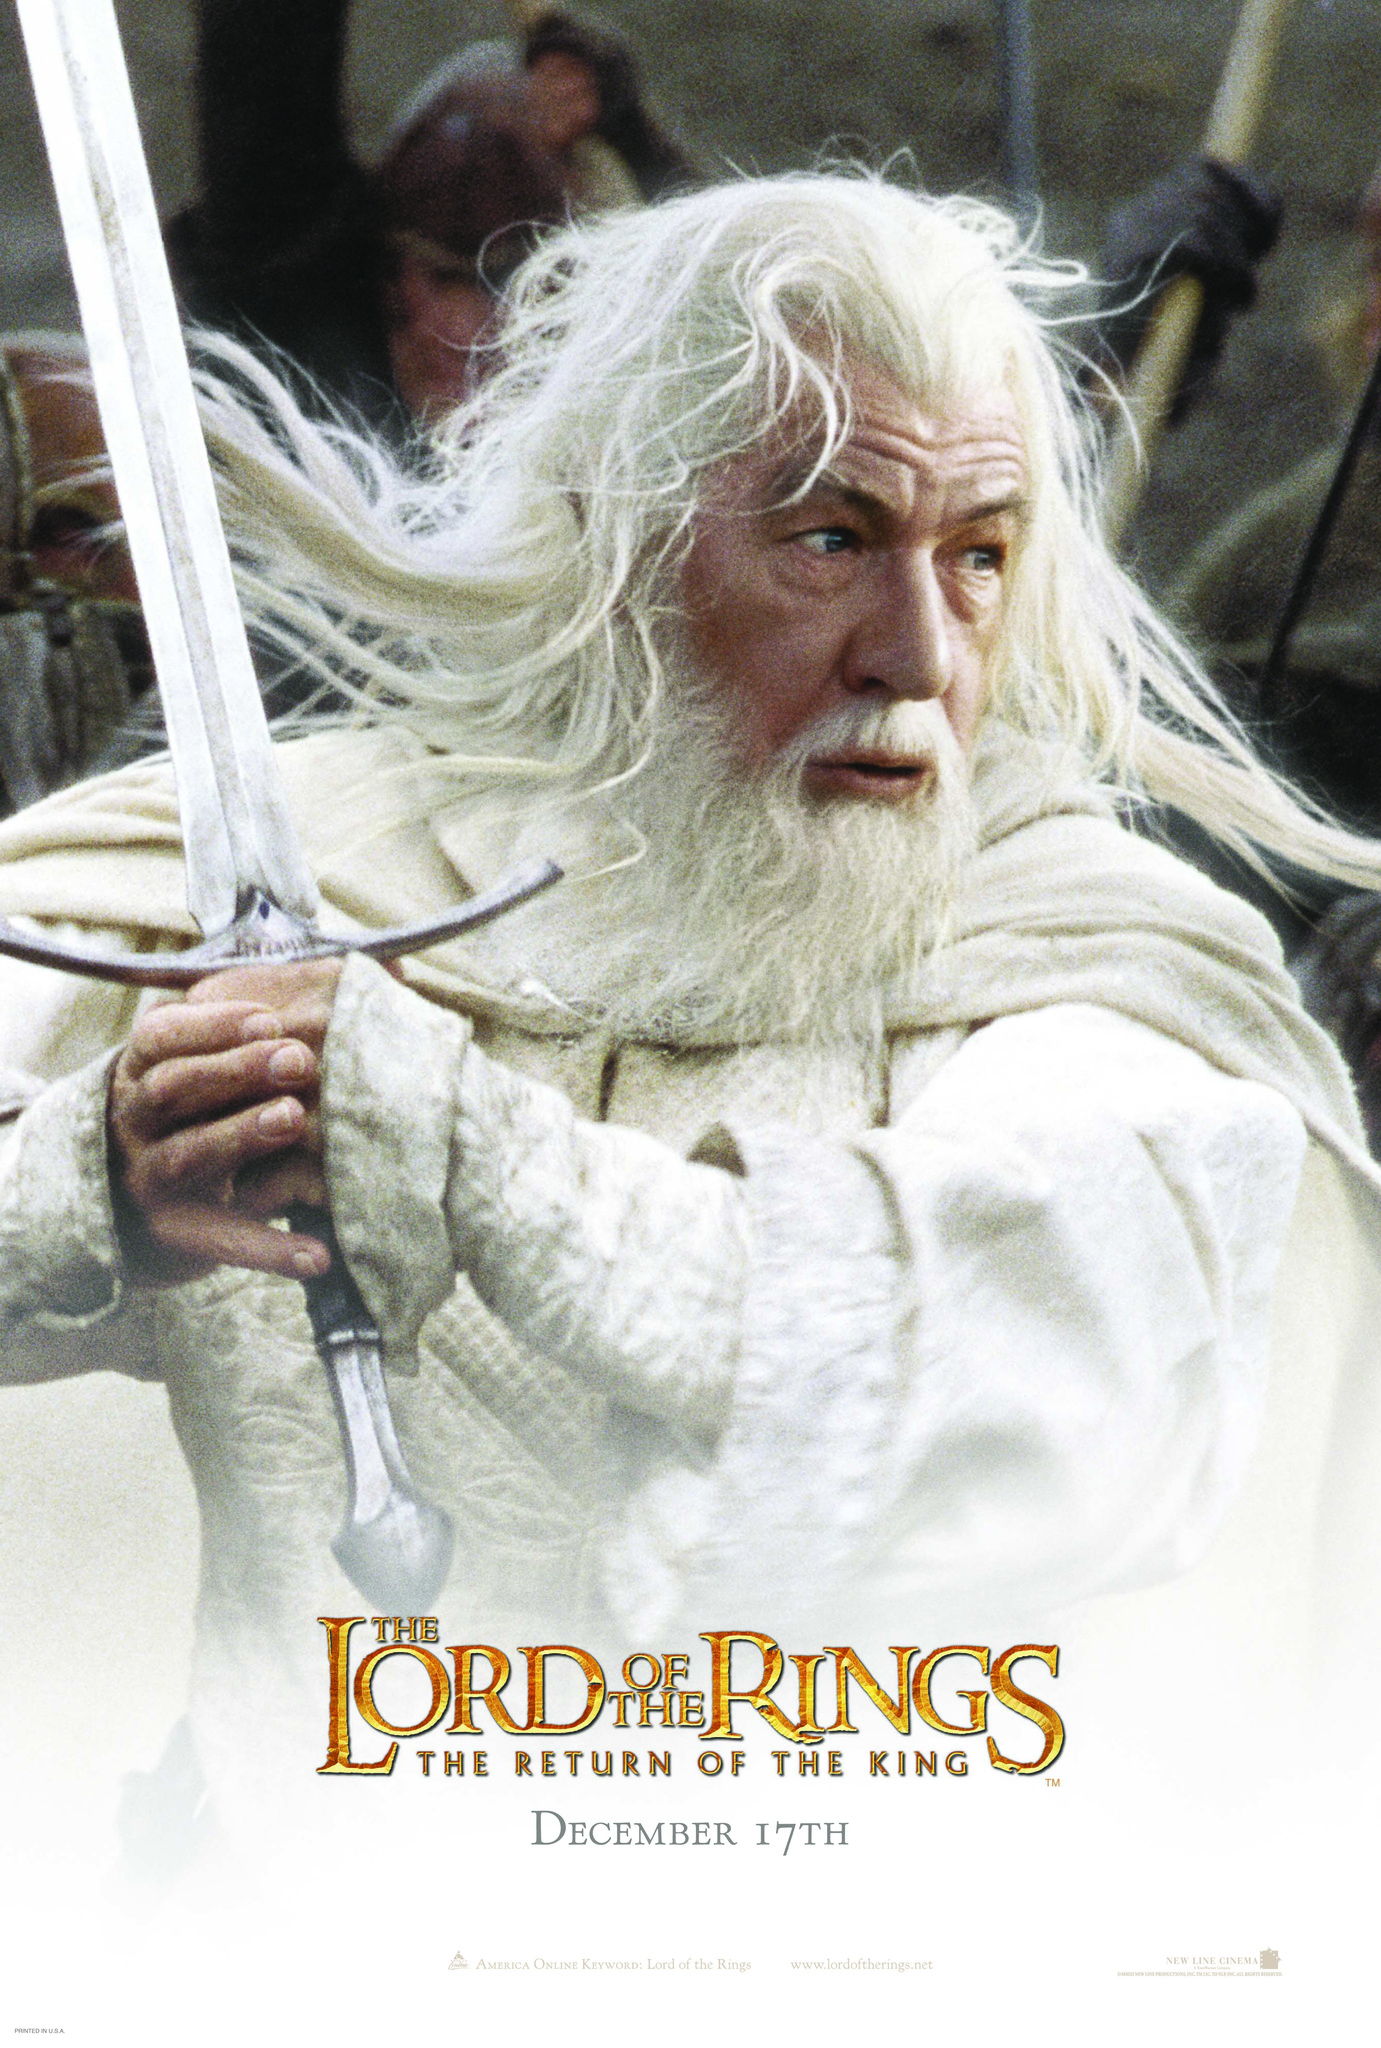 Ian McKellen in The Lord of the Rings: The Return of the King (2003)